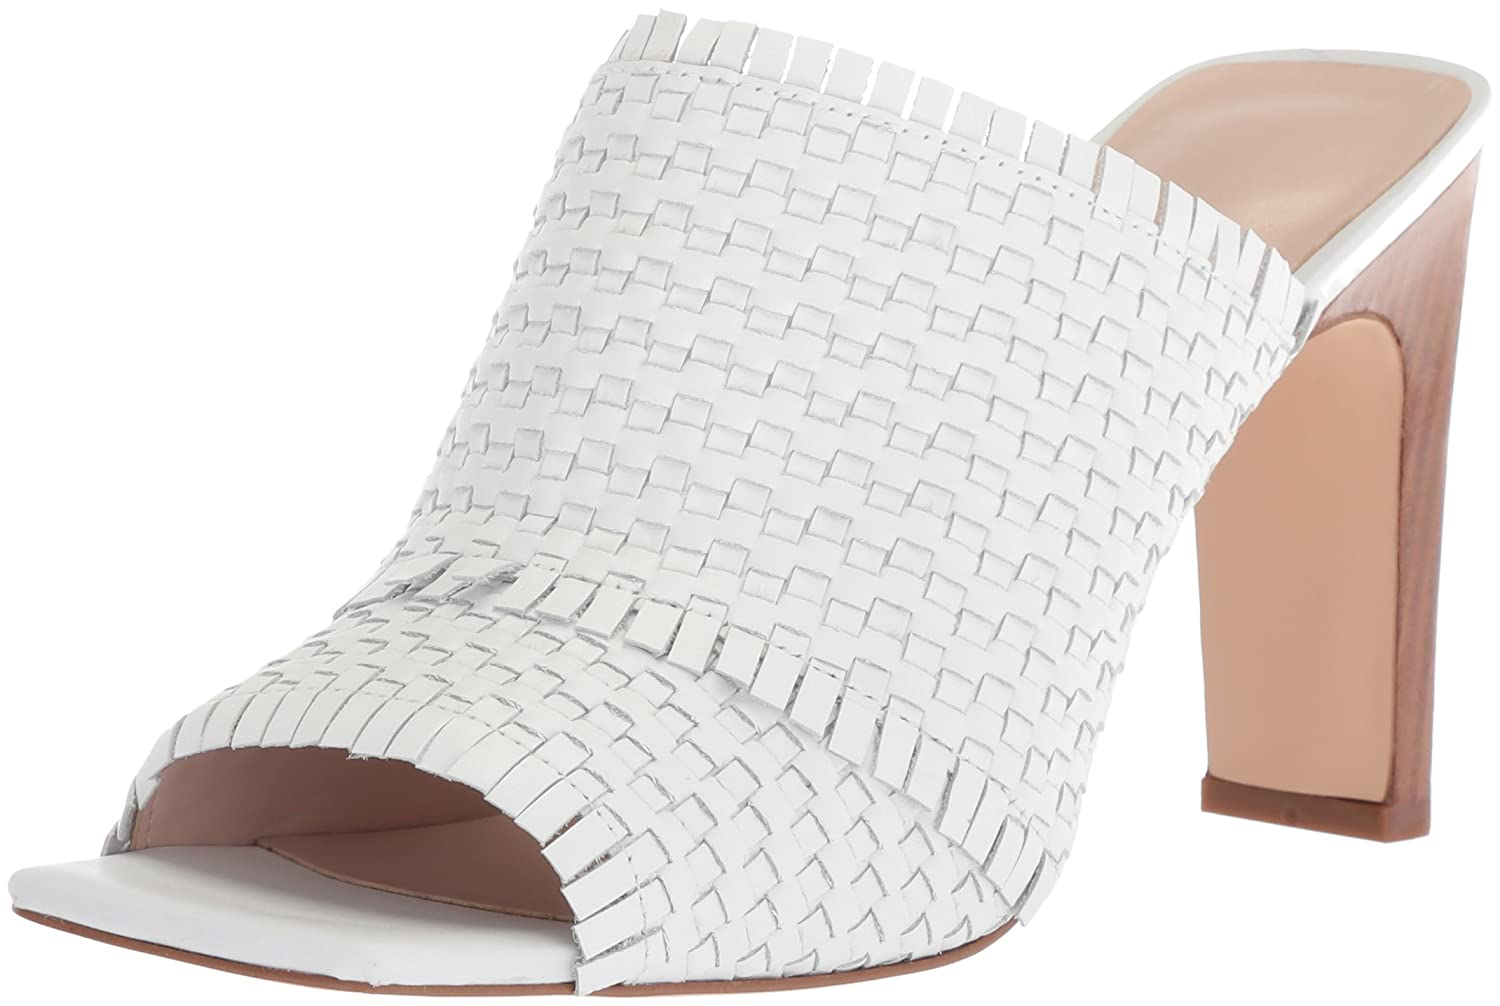 Nine West Women's Lucili Leather Slide Sandal B074NKVW9R 12 M US|White Leather